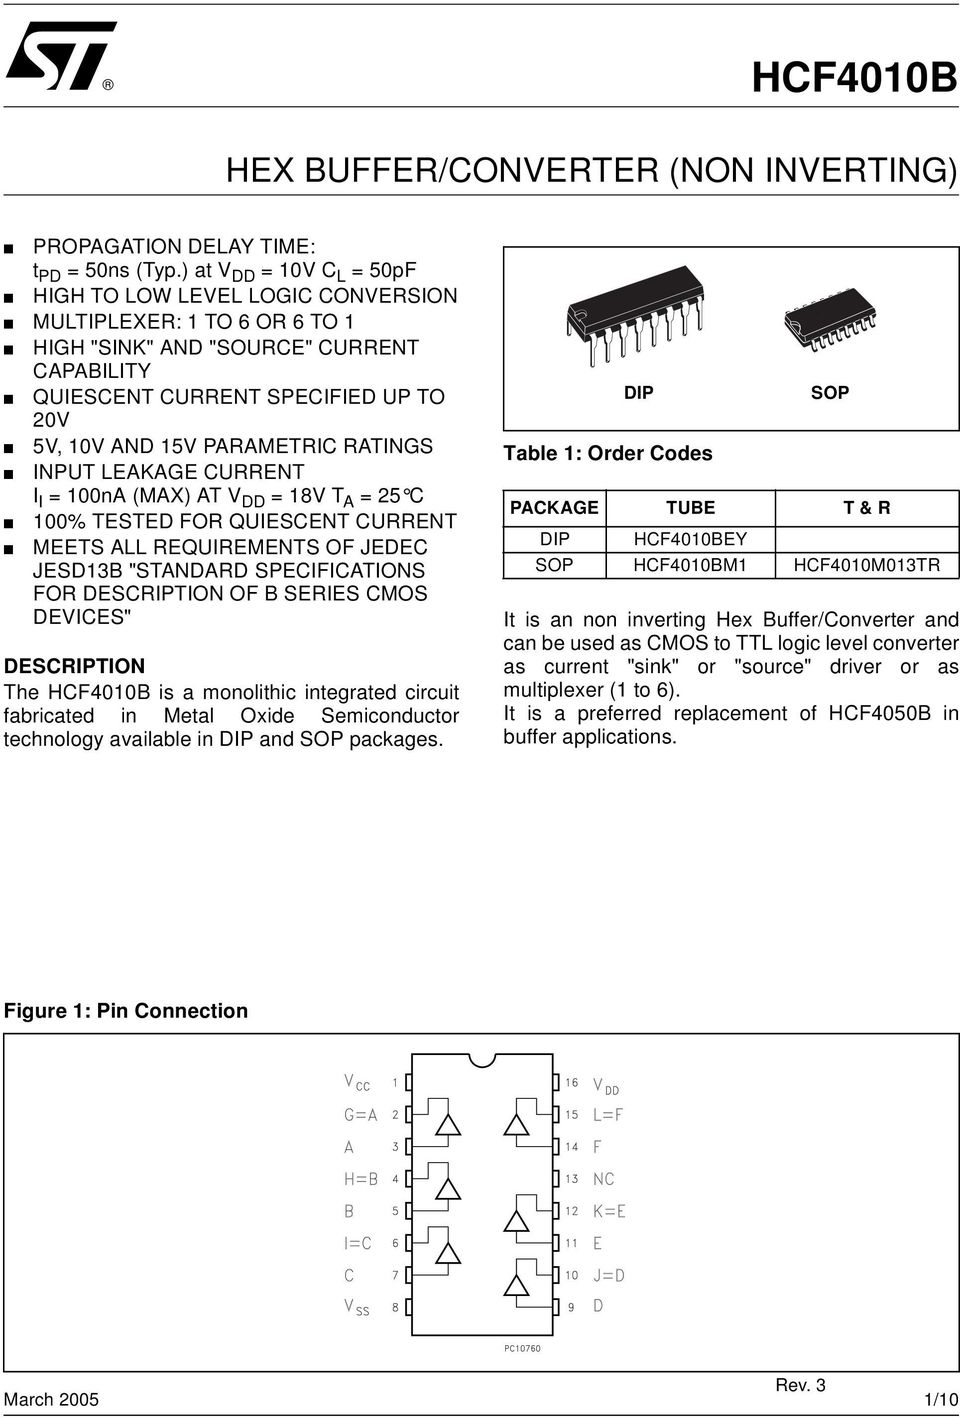 "PARAMETRIC RATINGS INPUT LEAKAGE CURRENT I I = 100nA (MAX) AT V DD = 18V T A = 25 C 100% TESTED FOR QUIESCENT CURRENT MEETS ALL REQUIREMENTS OF JEDEC JESD13B ""STANDARD SPECIFICATIONS FOR DESCRIPTION"